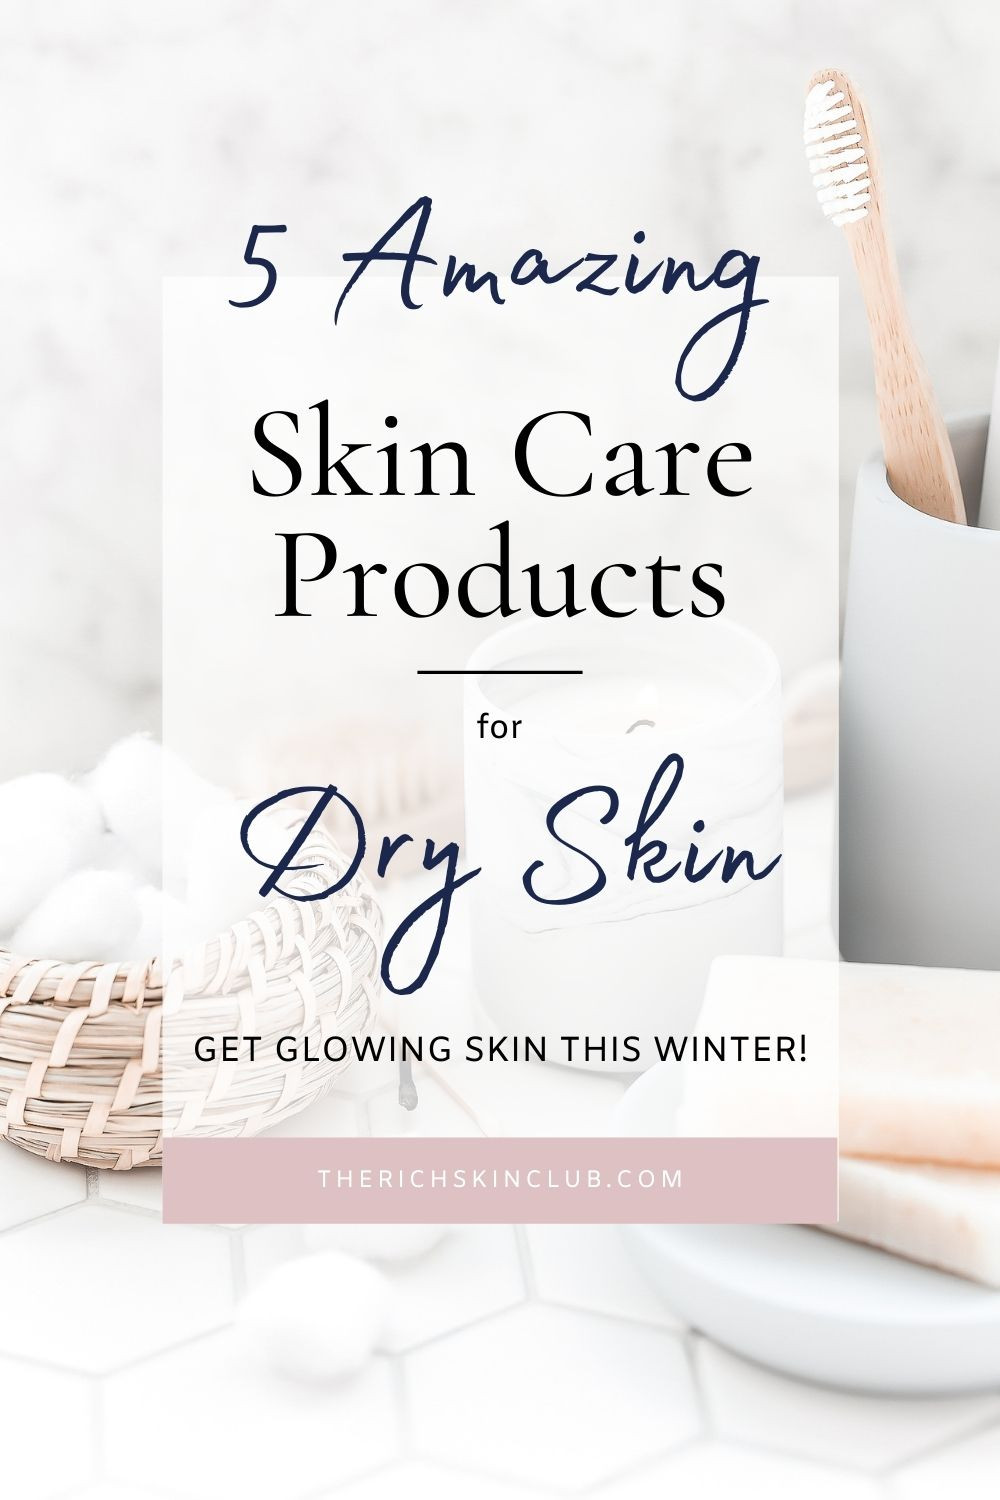 Does your skin get dry, rough and flakey at winter time? Here's my 5 Essential skincare products for glowing skin this winter! #drywinterskin #dryskincare #oilfordryskin